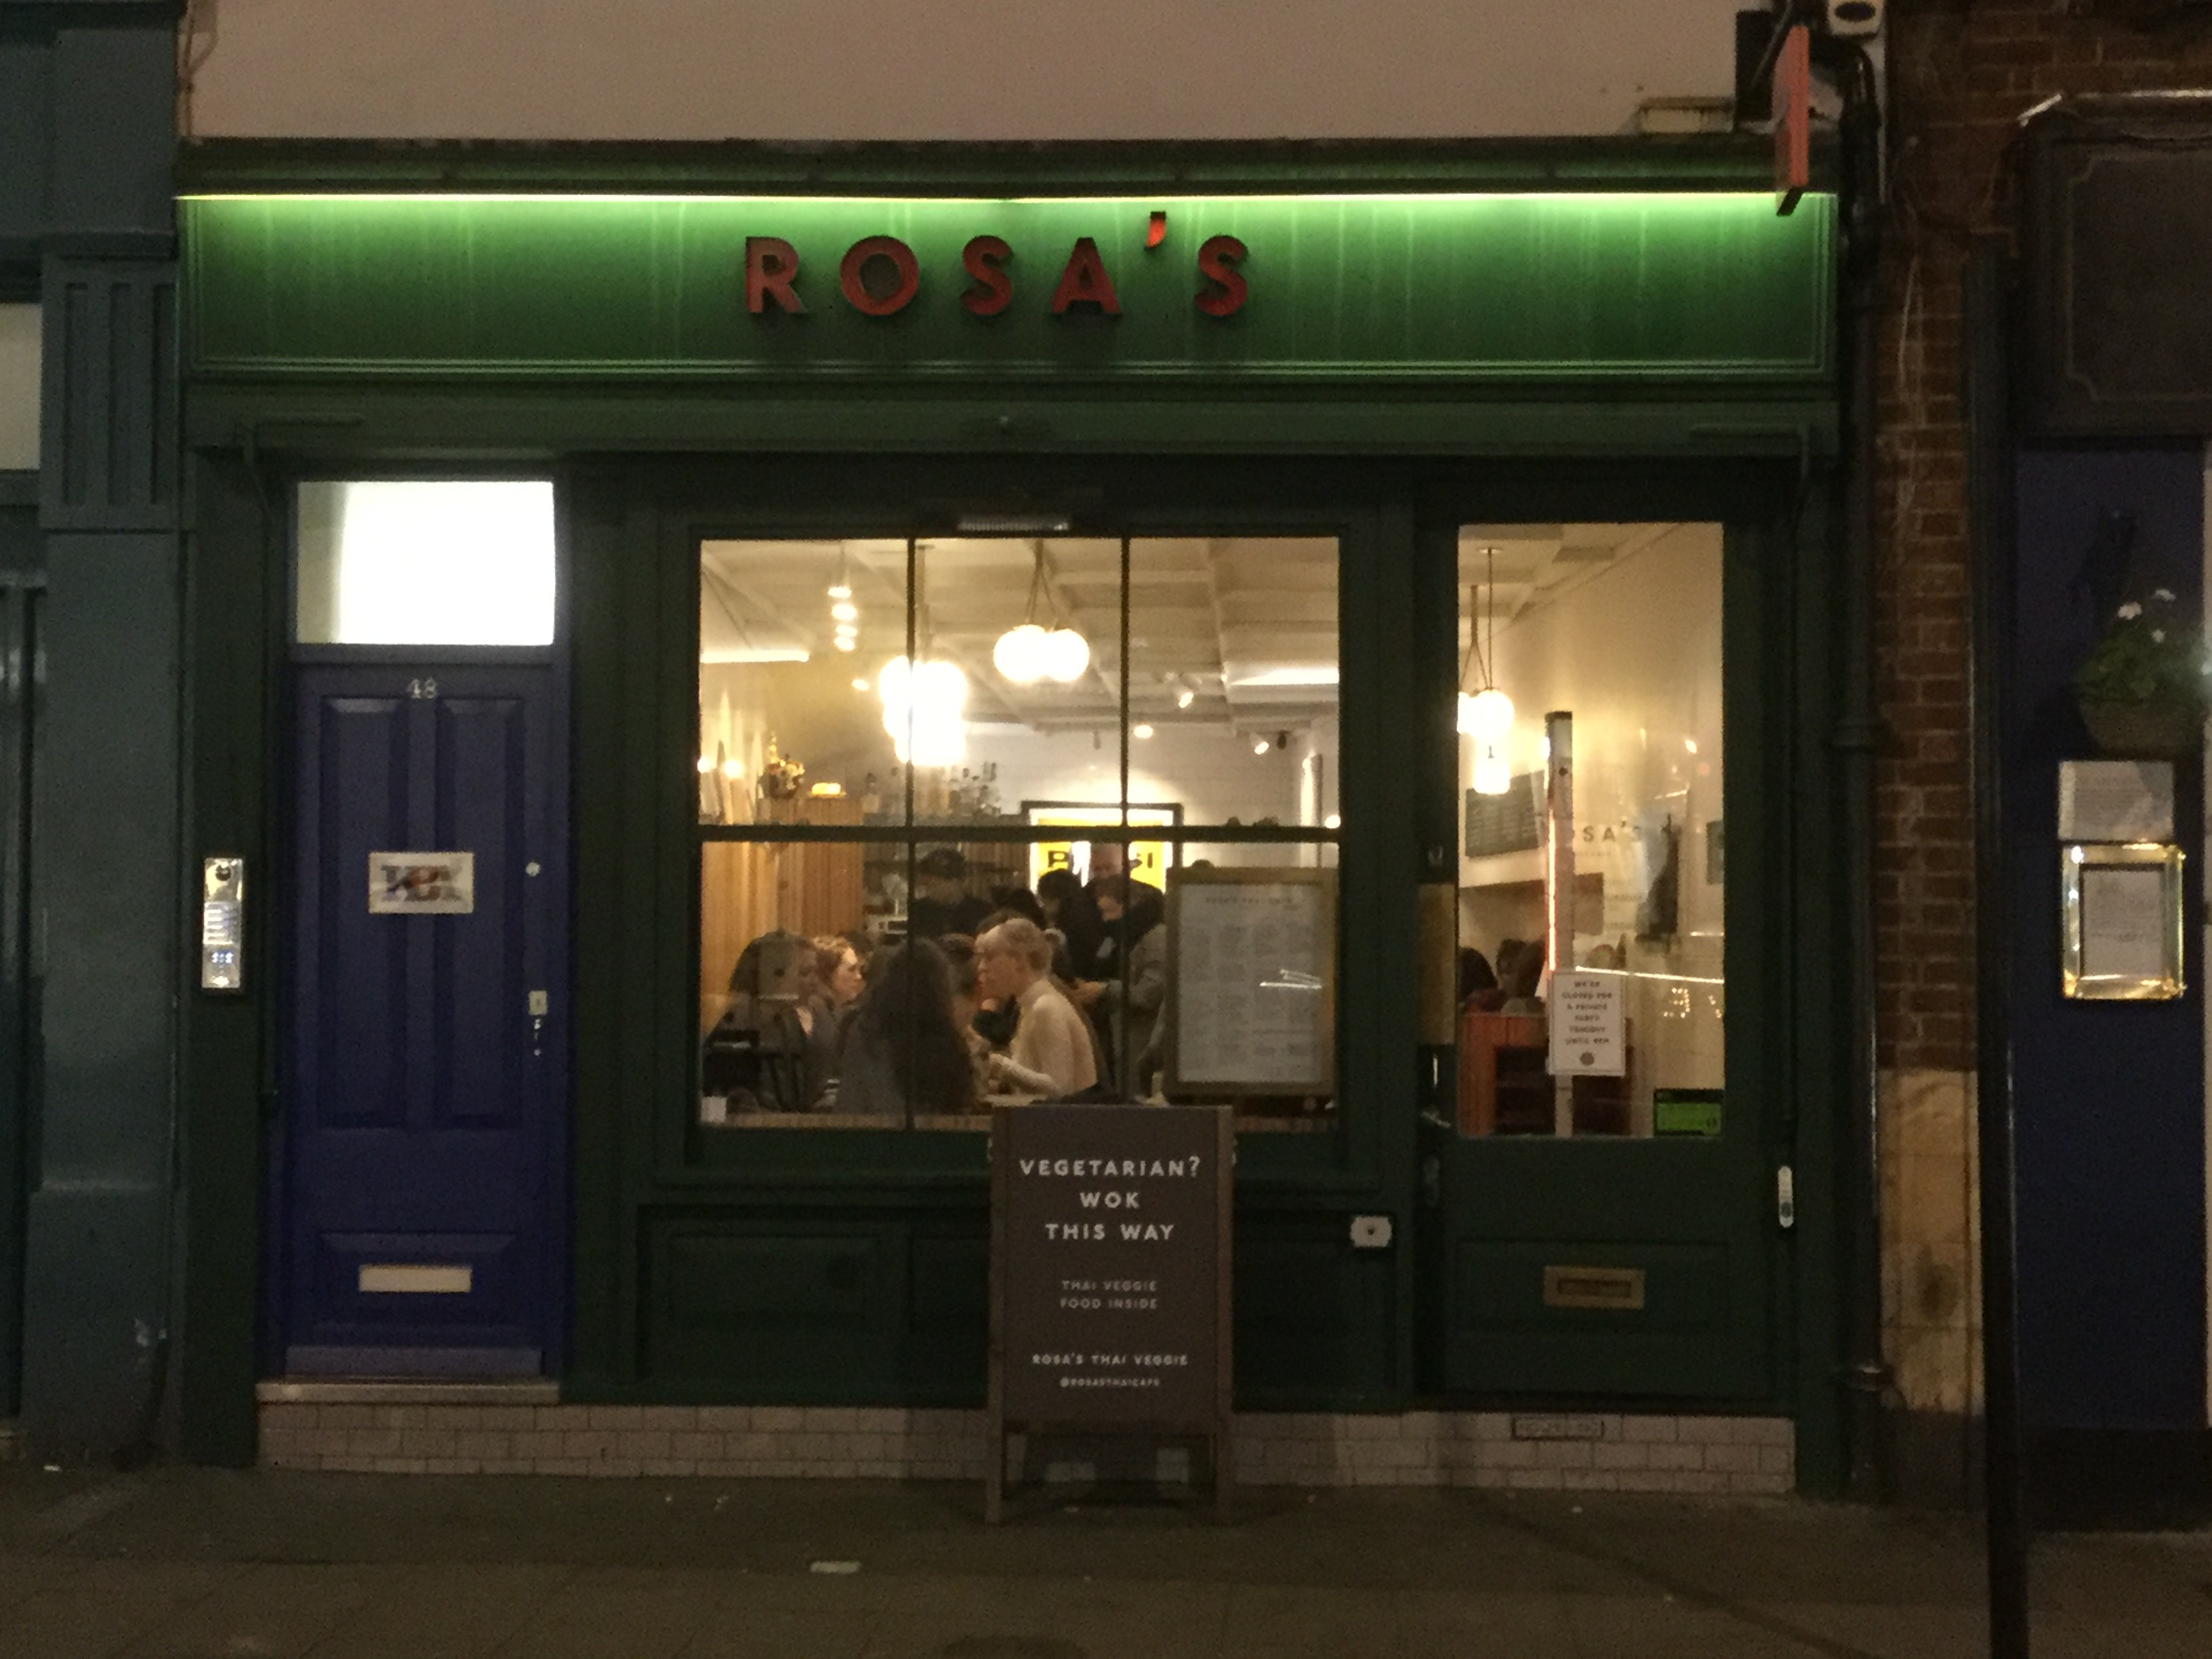 Veganuary – Rosa's Thai Veggie Pop-up